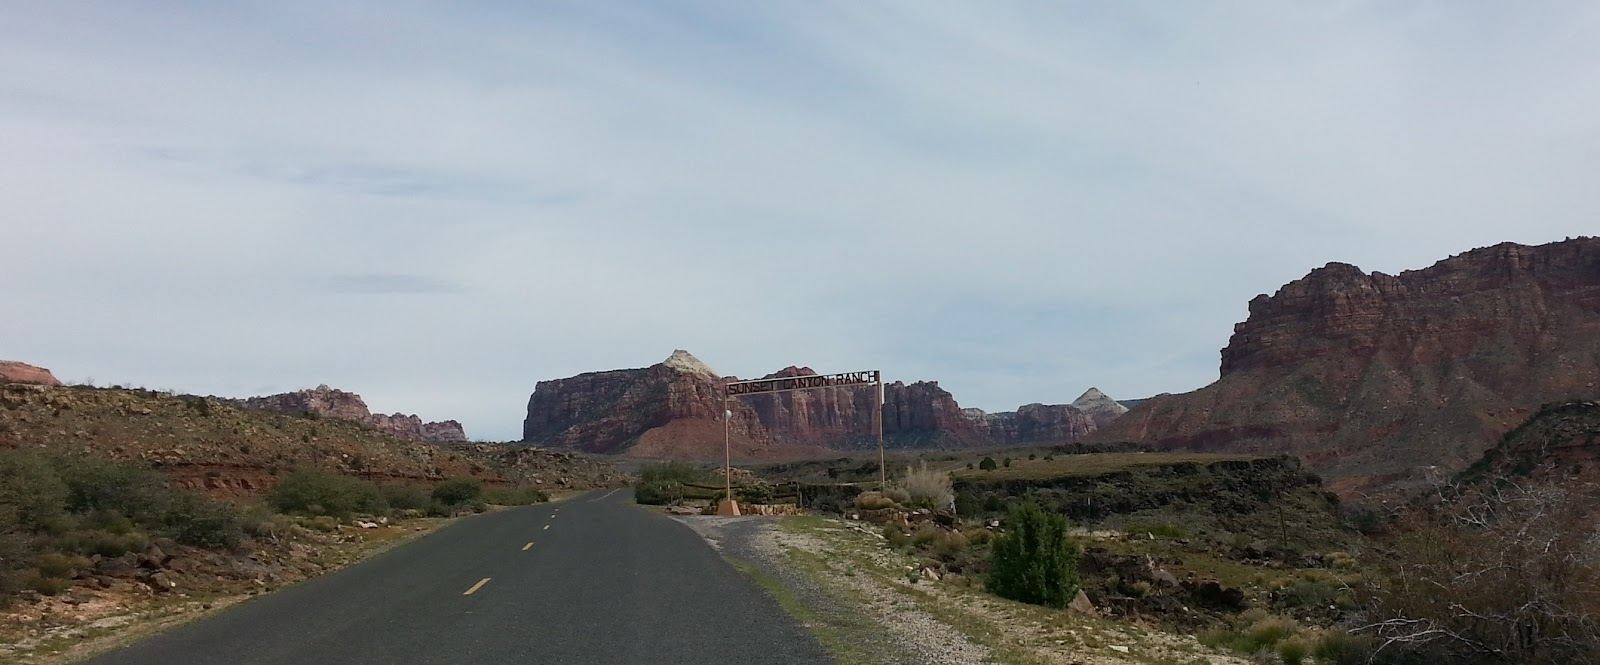 Bicycle ride up Kolob Terrace - red rock mountain formations and roadway